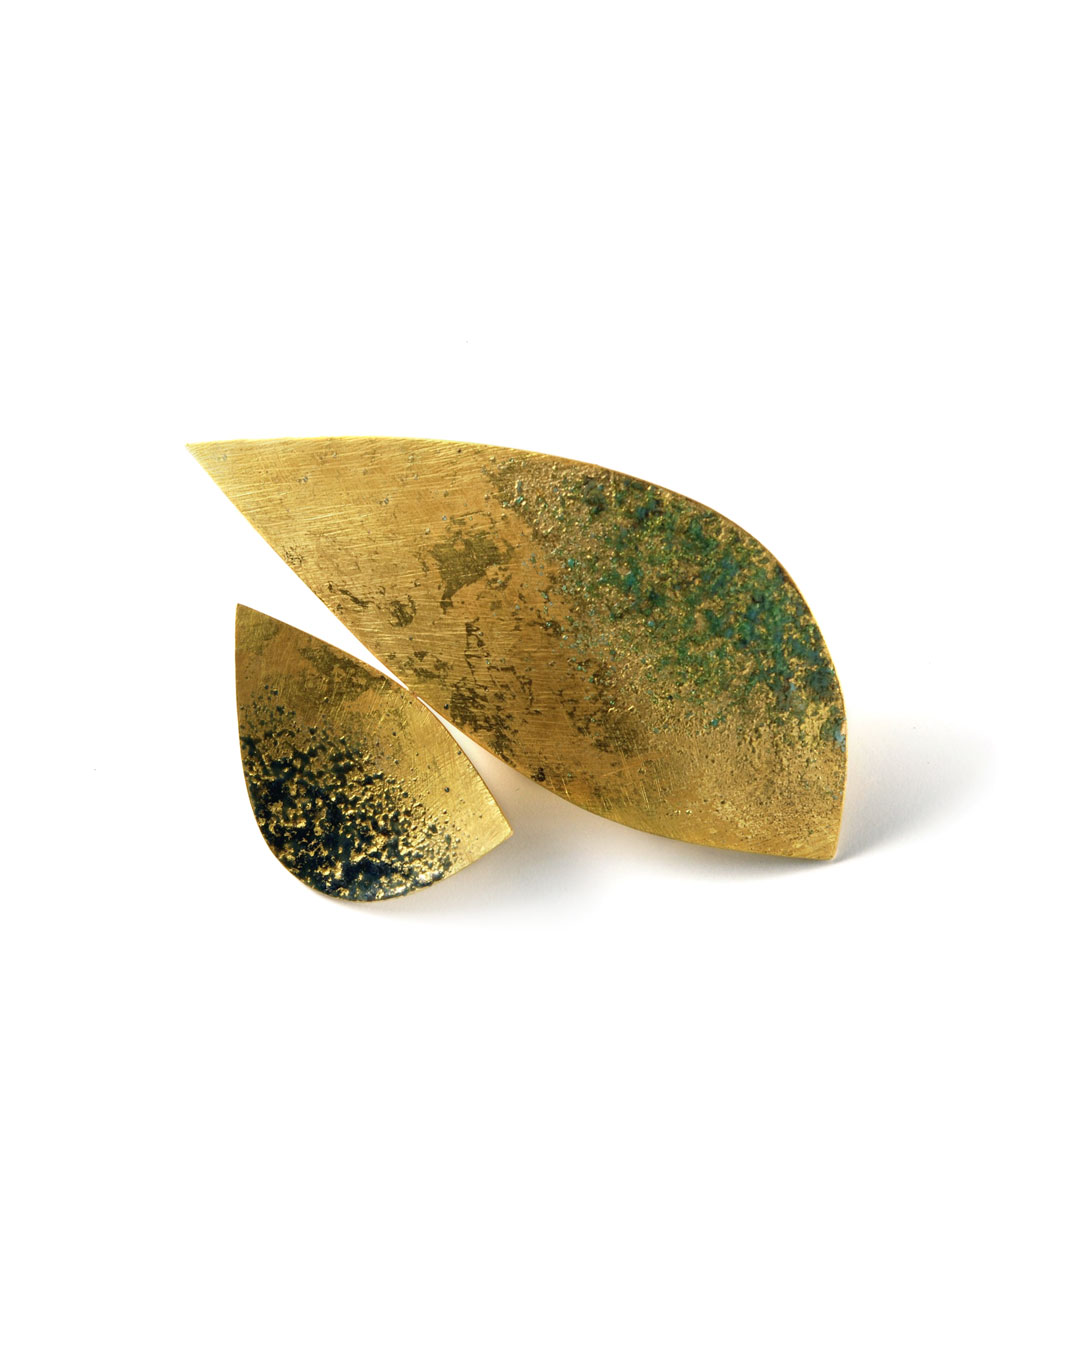 Graziano Visintin, untitled, 2007, brooch; gold, enamel, gold leaf, 56 x 80 mm, €7260